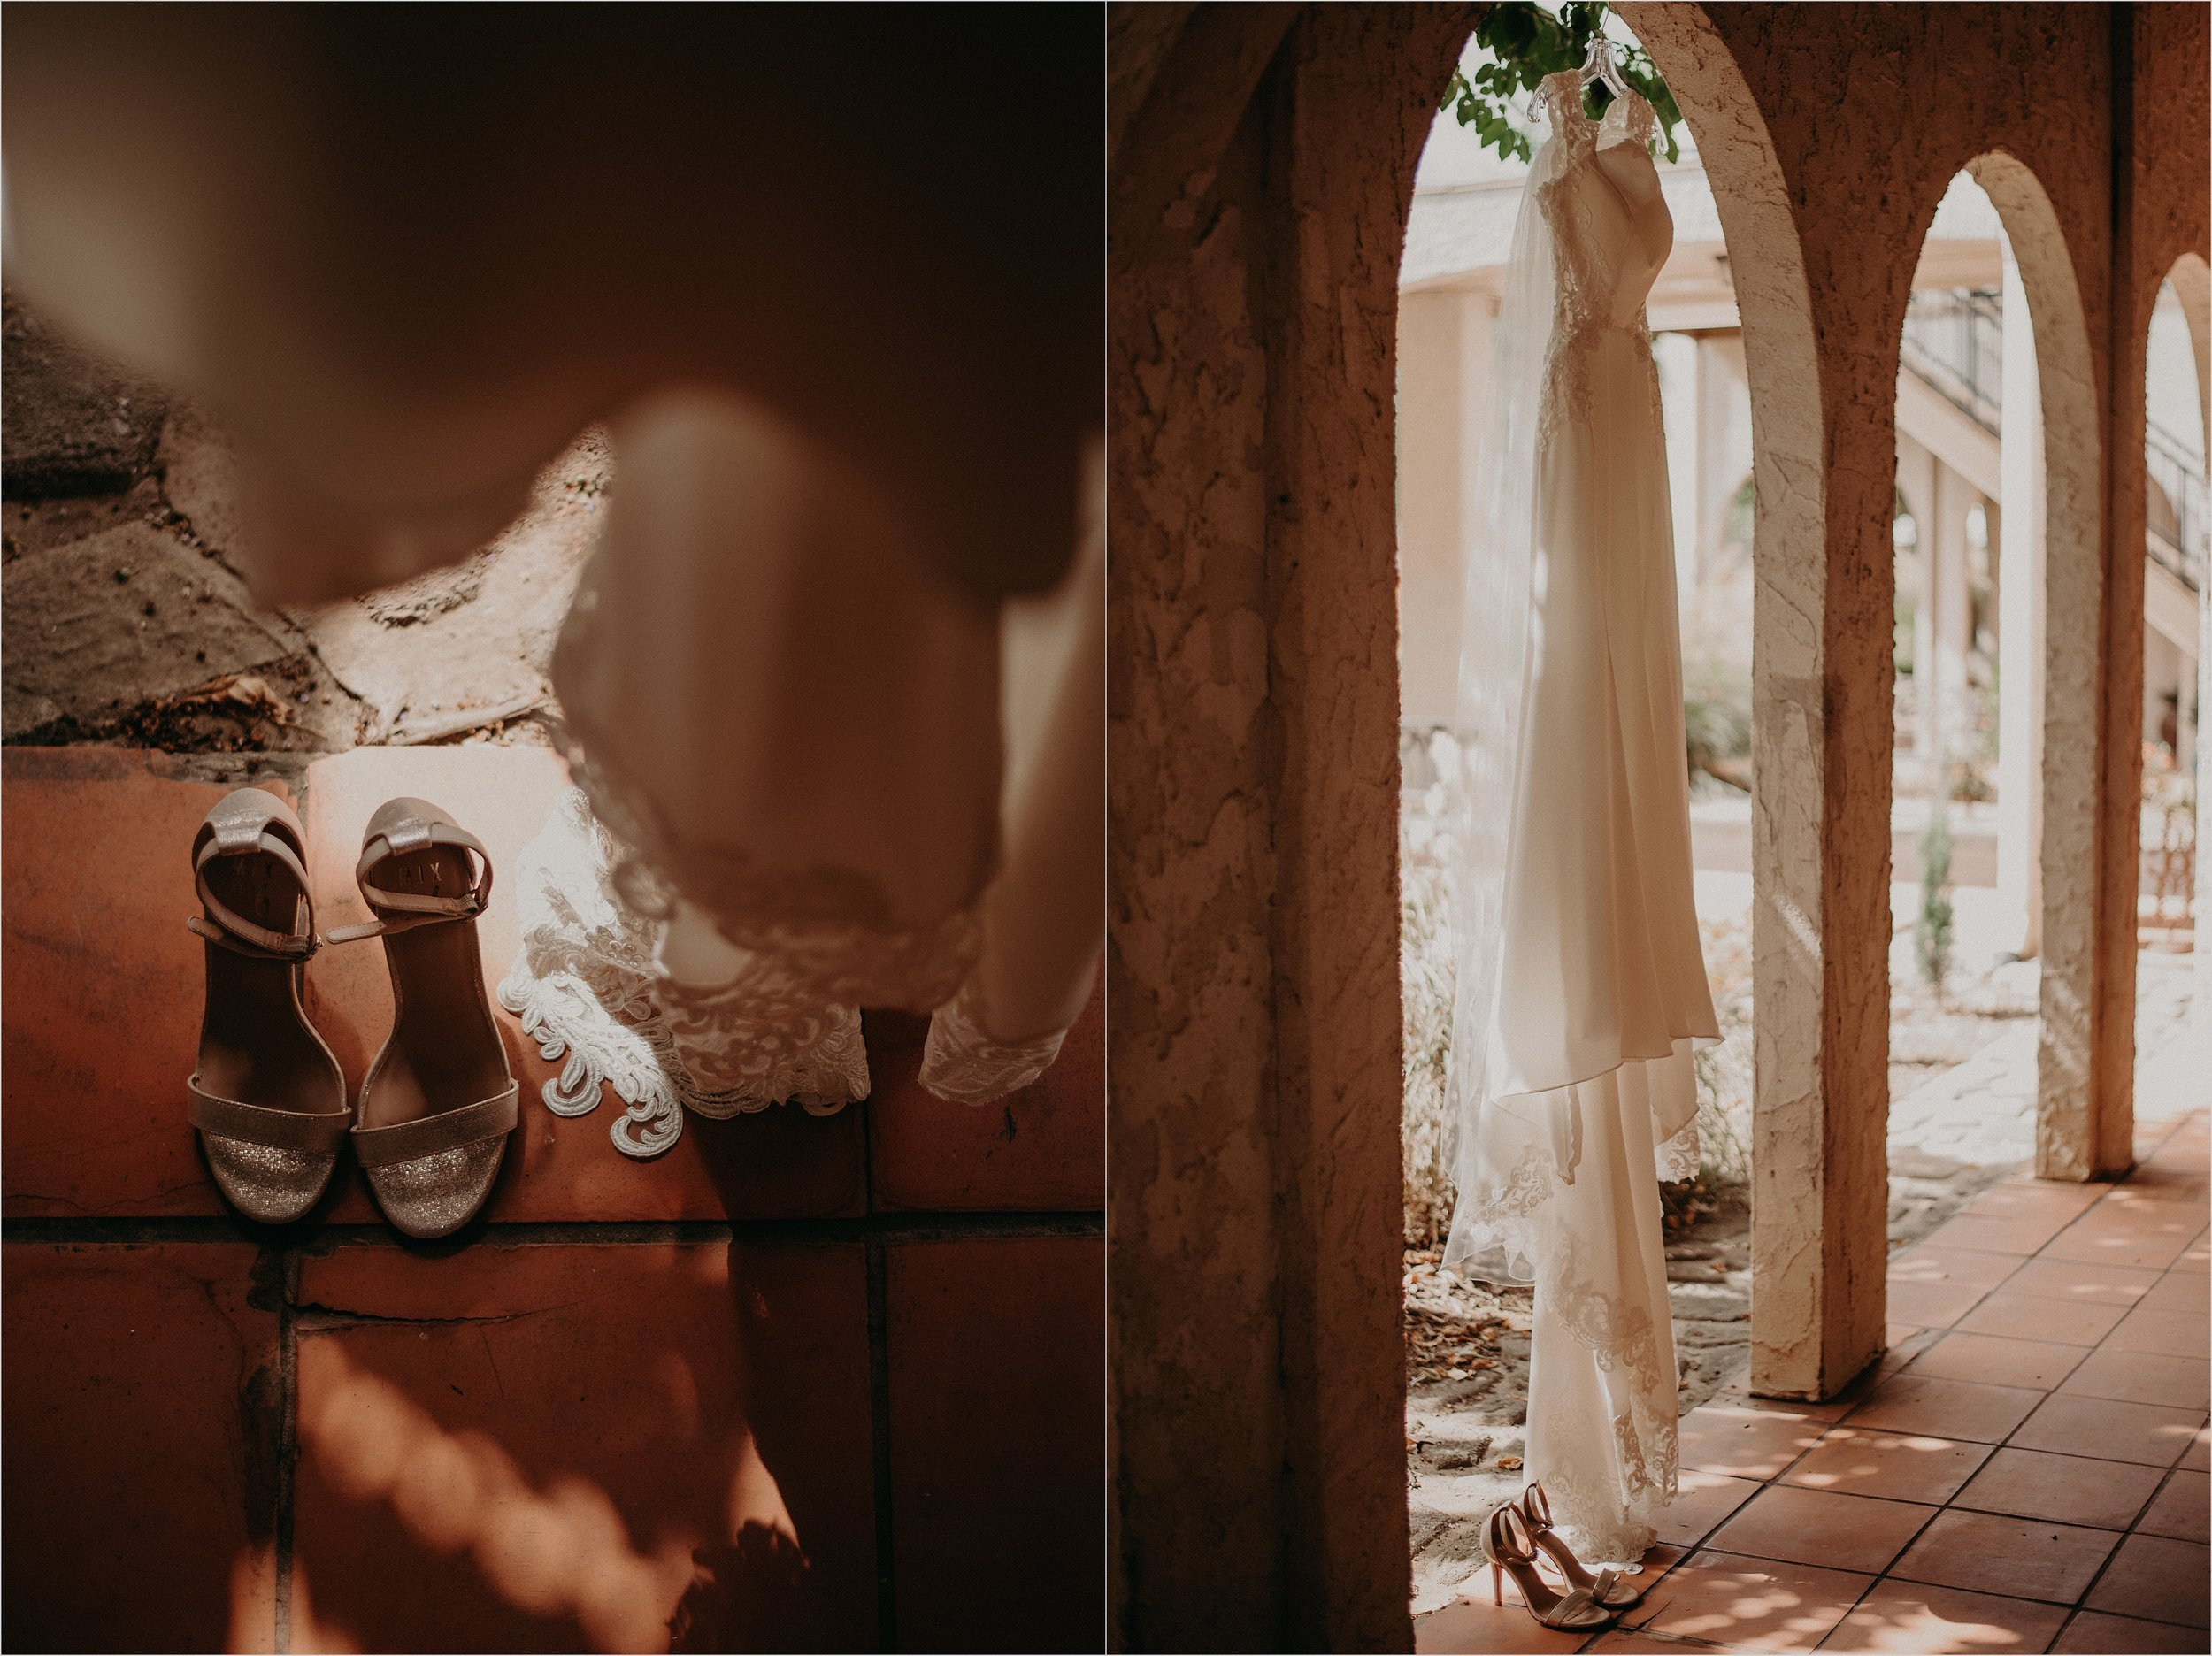 Villa inspired wedding details at Tennessee Riverplace